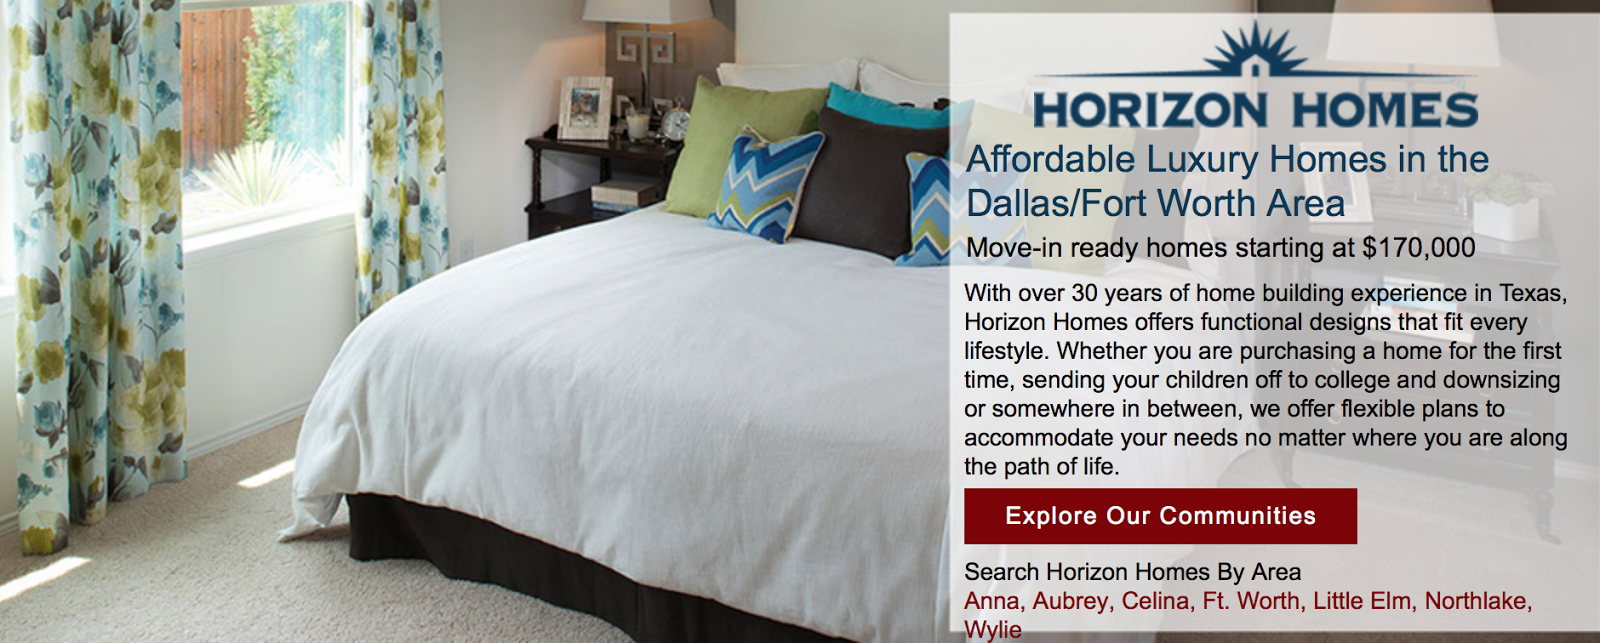 New Build Homes For Sale Dfw